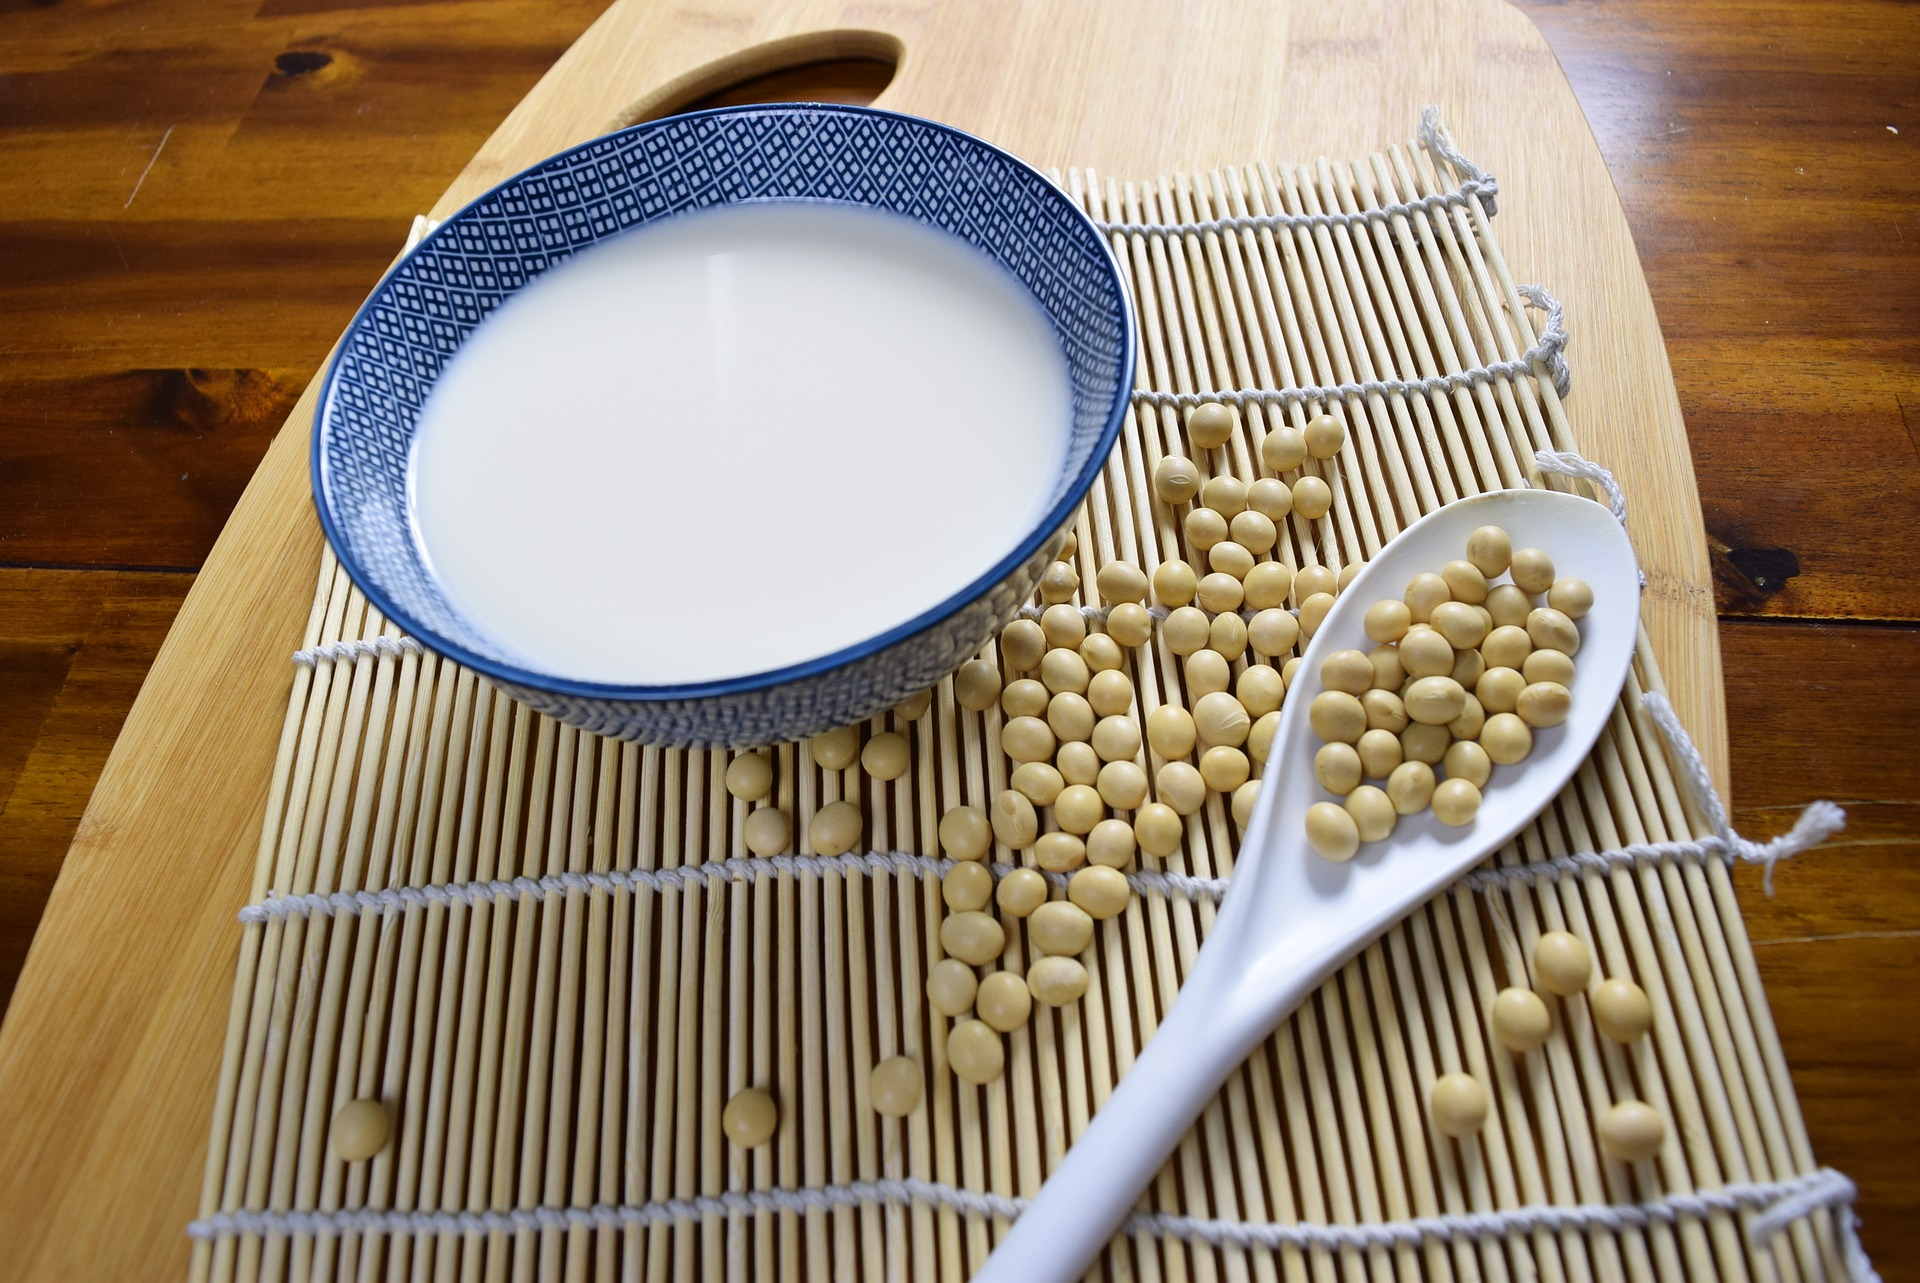 Soybean is not the best source for protein. nutrition tips from Nutritionist in mumbai, India- Shikha Gupta